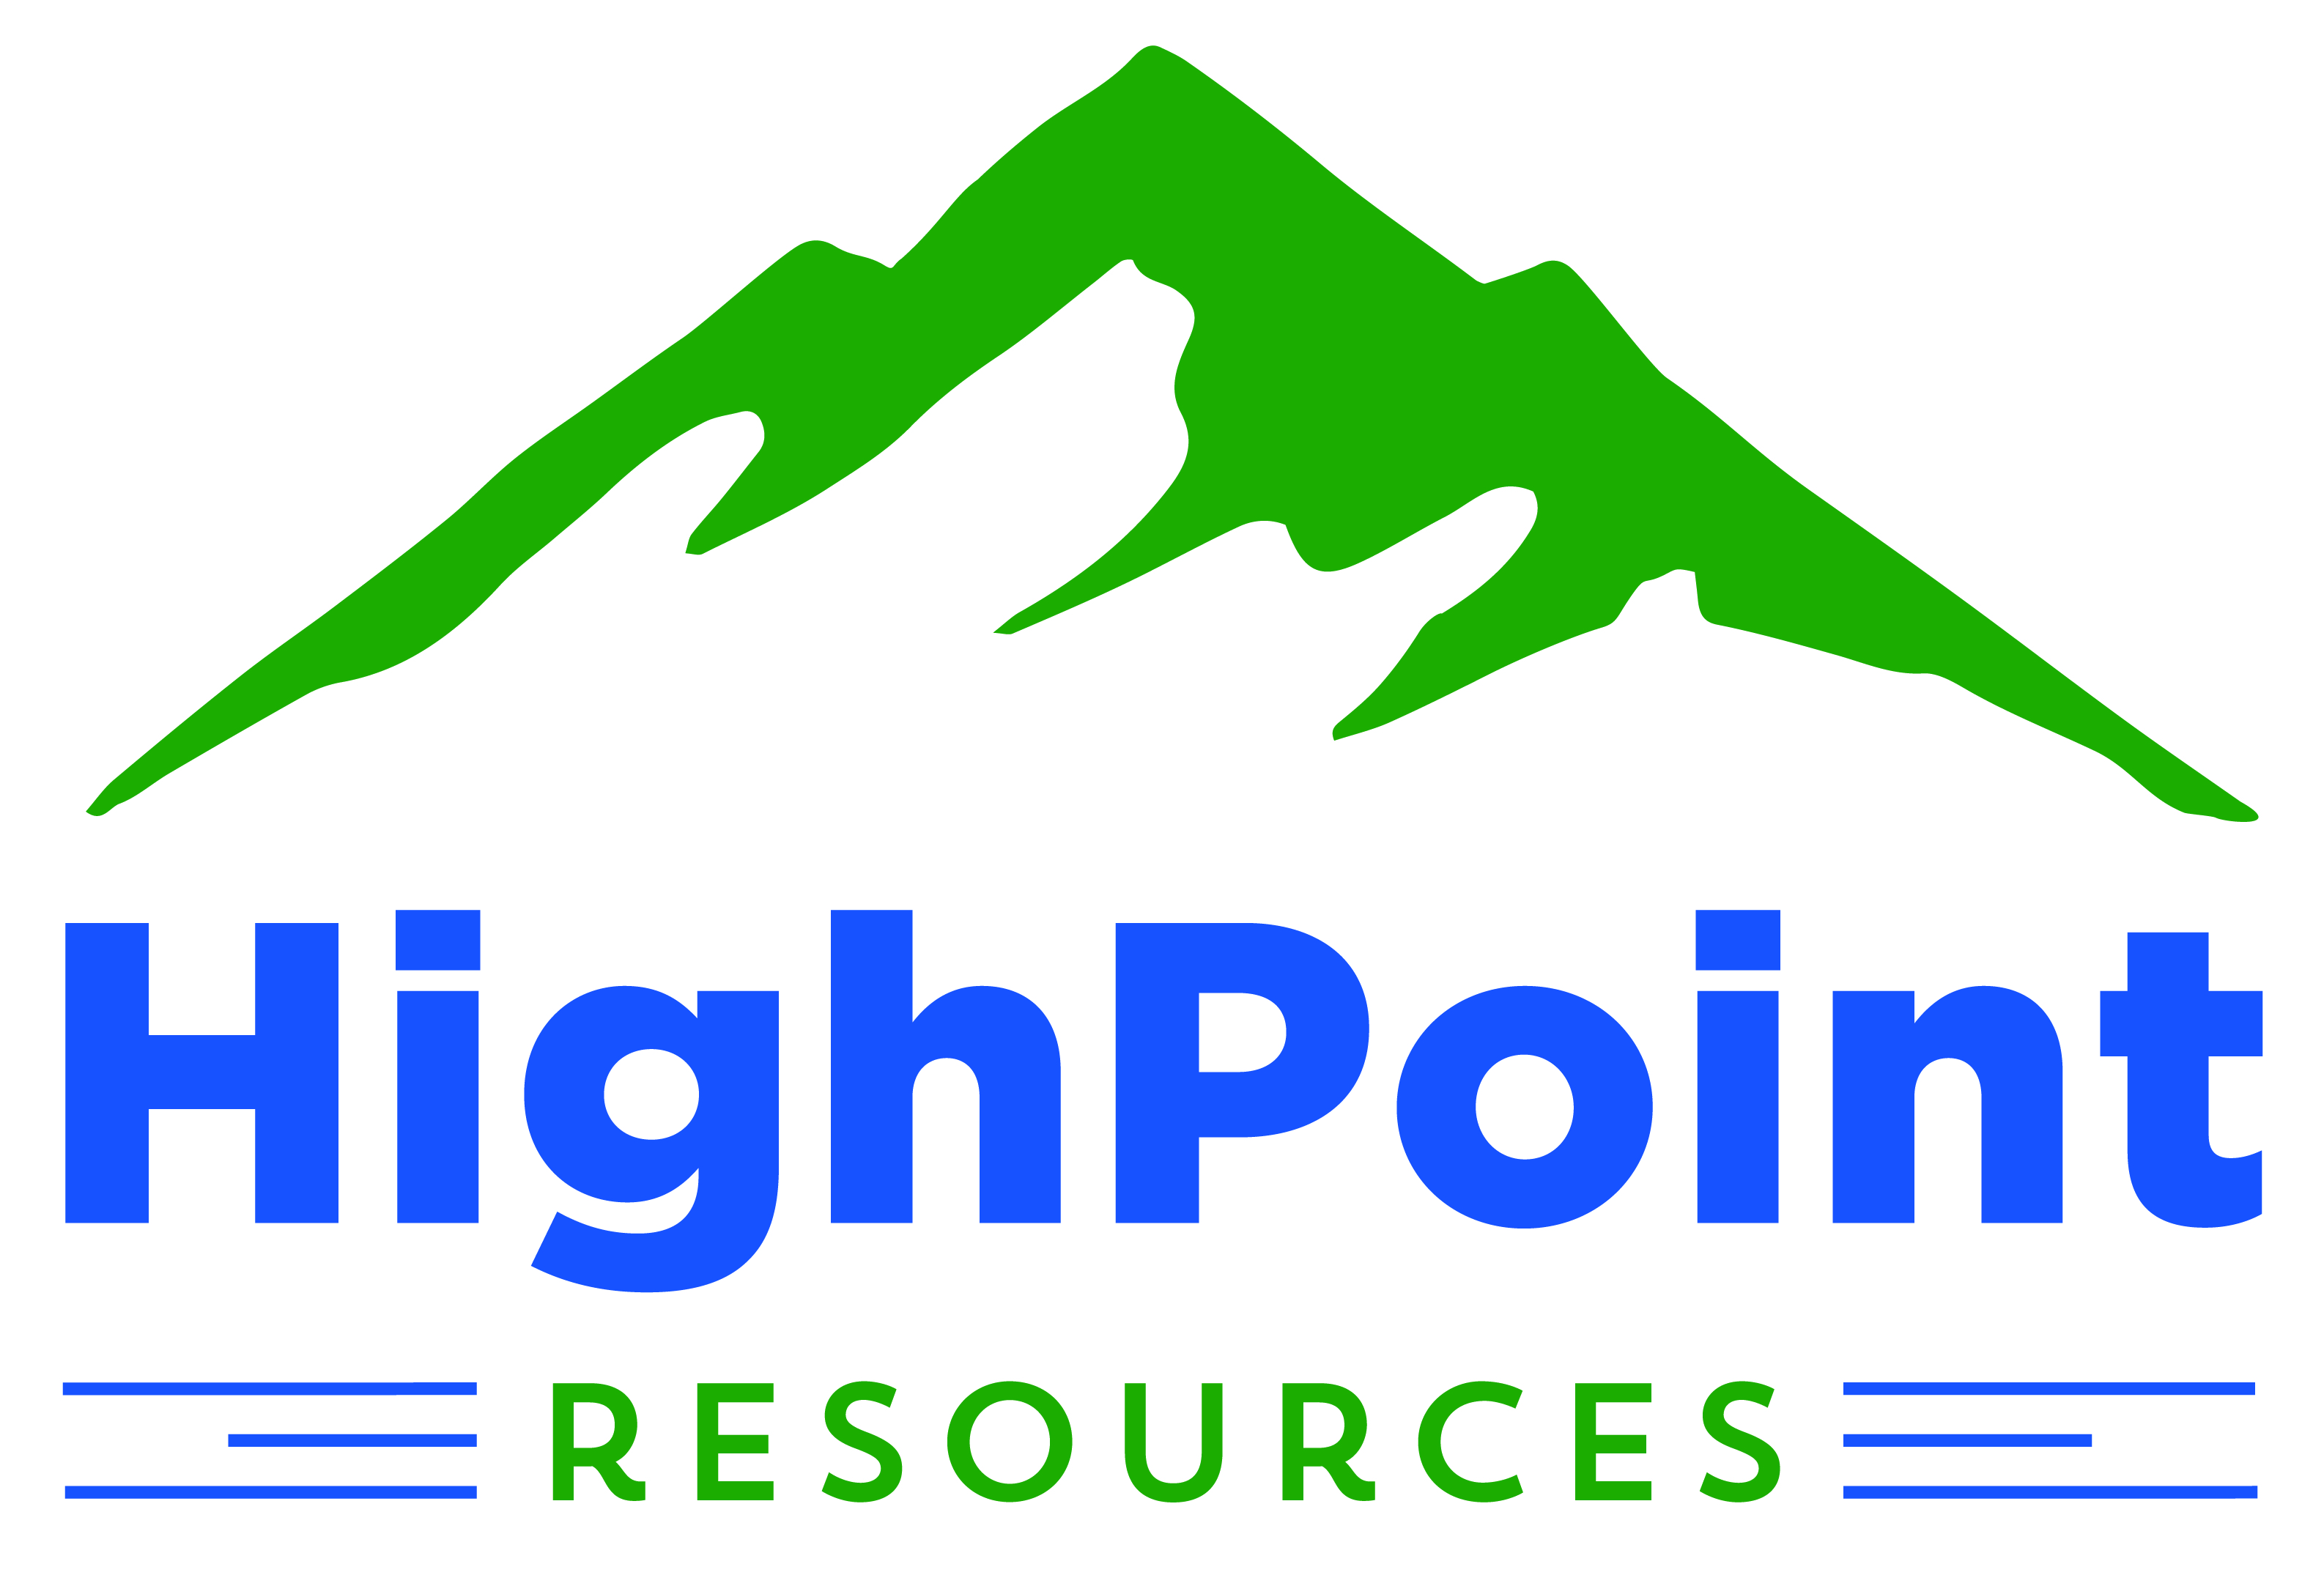 HighPoint Resources Announces Fourth Quarter and Year-End 2018 Earnings Release Date and Conference Call